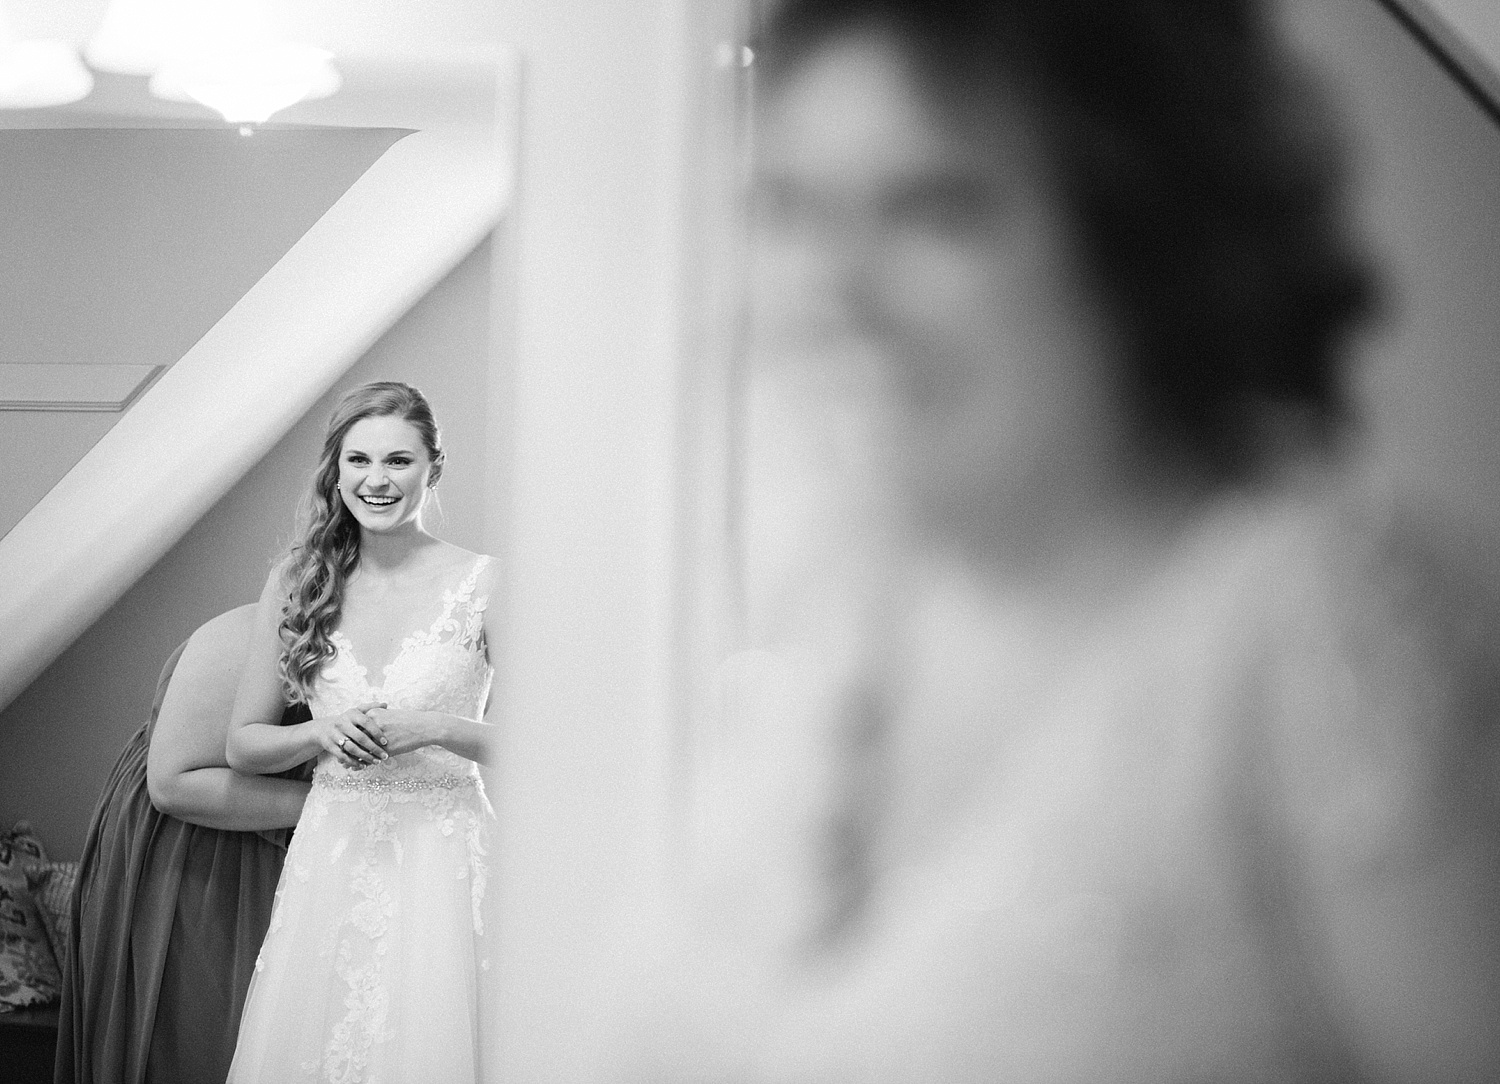 jessdavid_barnonbridge_phoenixville_winter_wedding_image_036.jpg